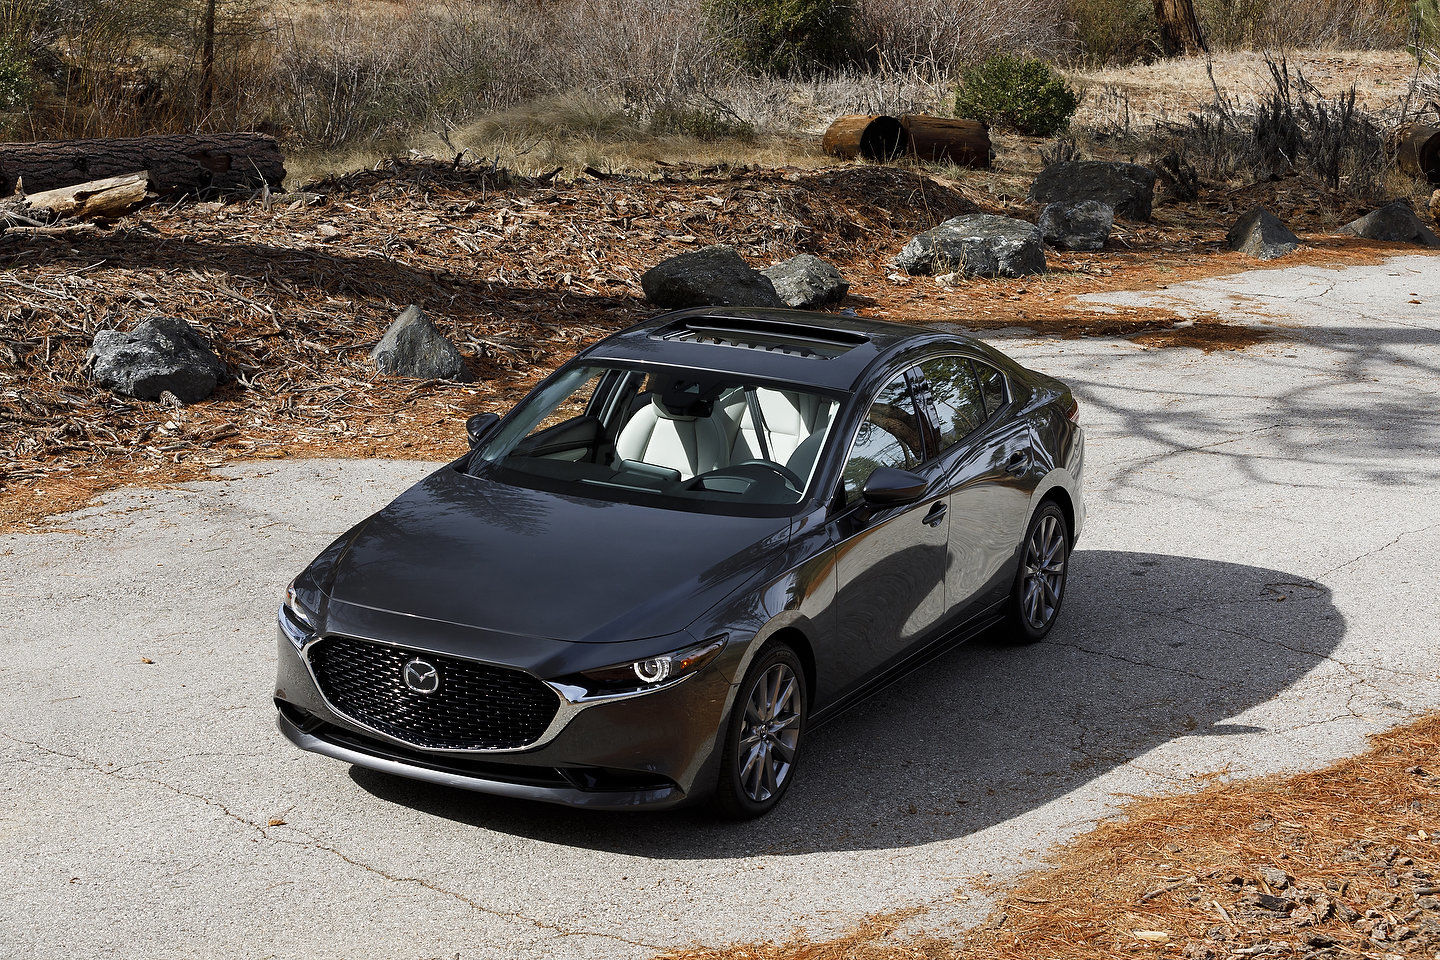 2019 Mazda3: Three Things to Know About the New Mazda Compact